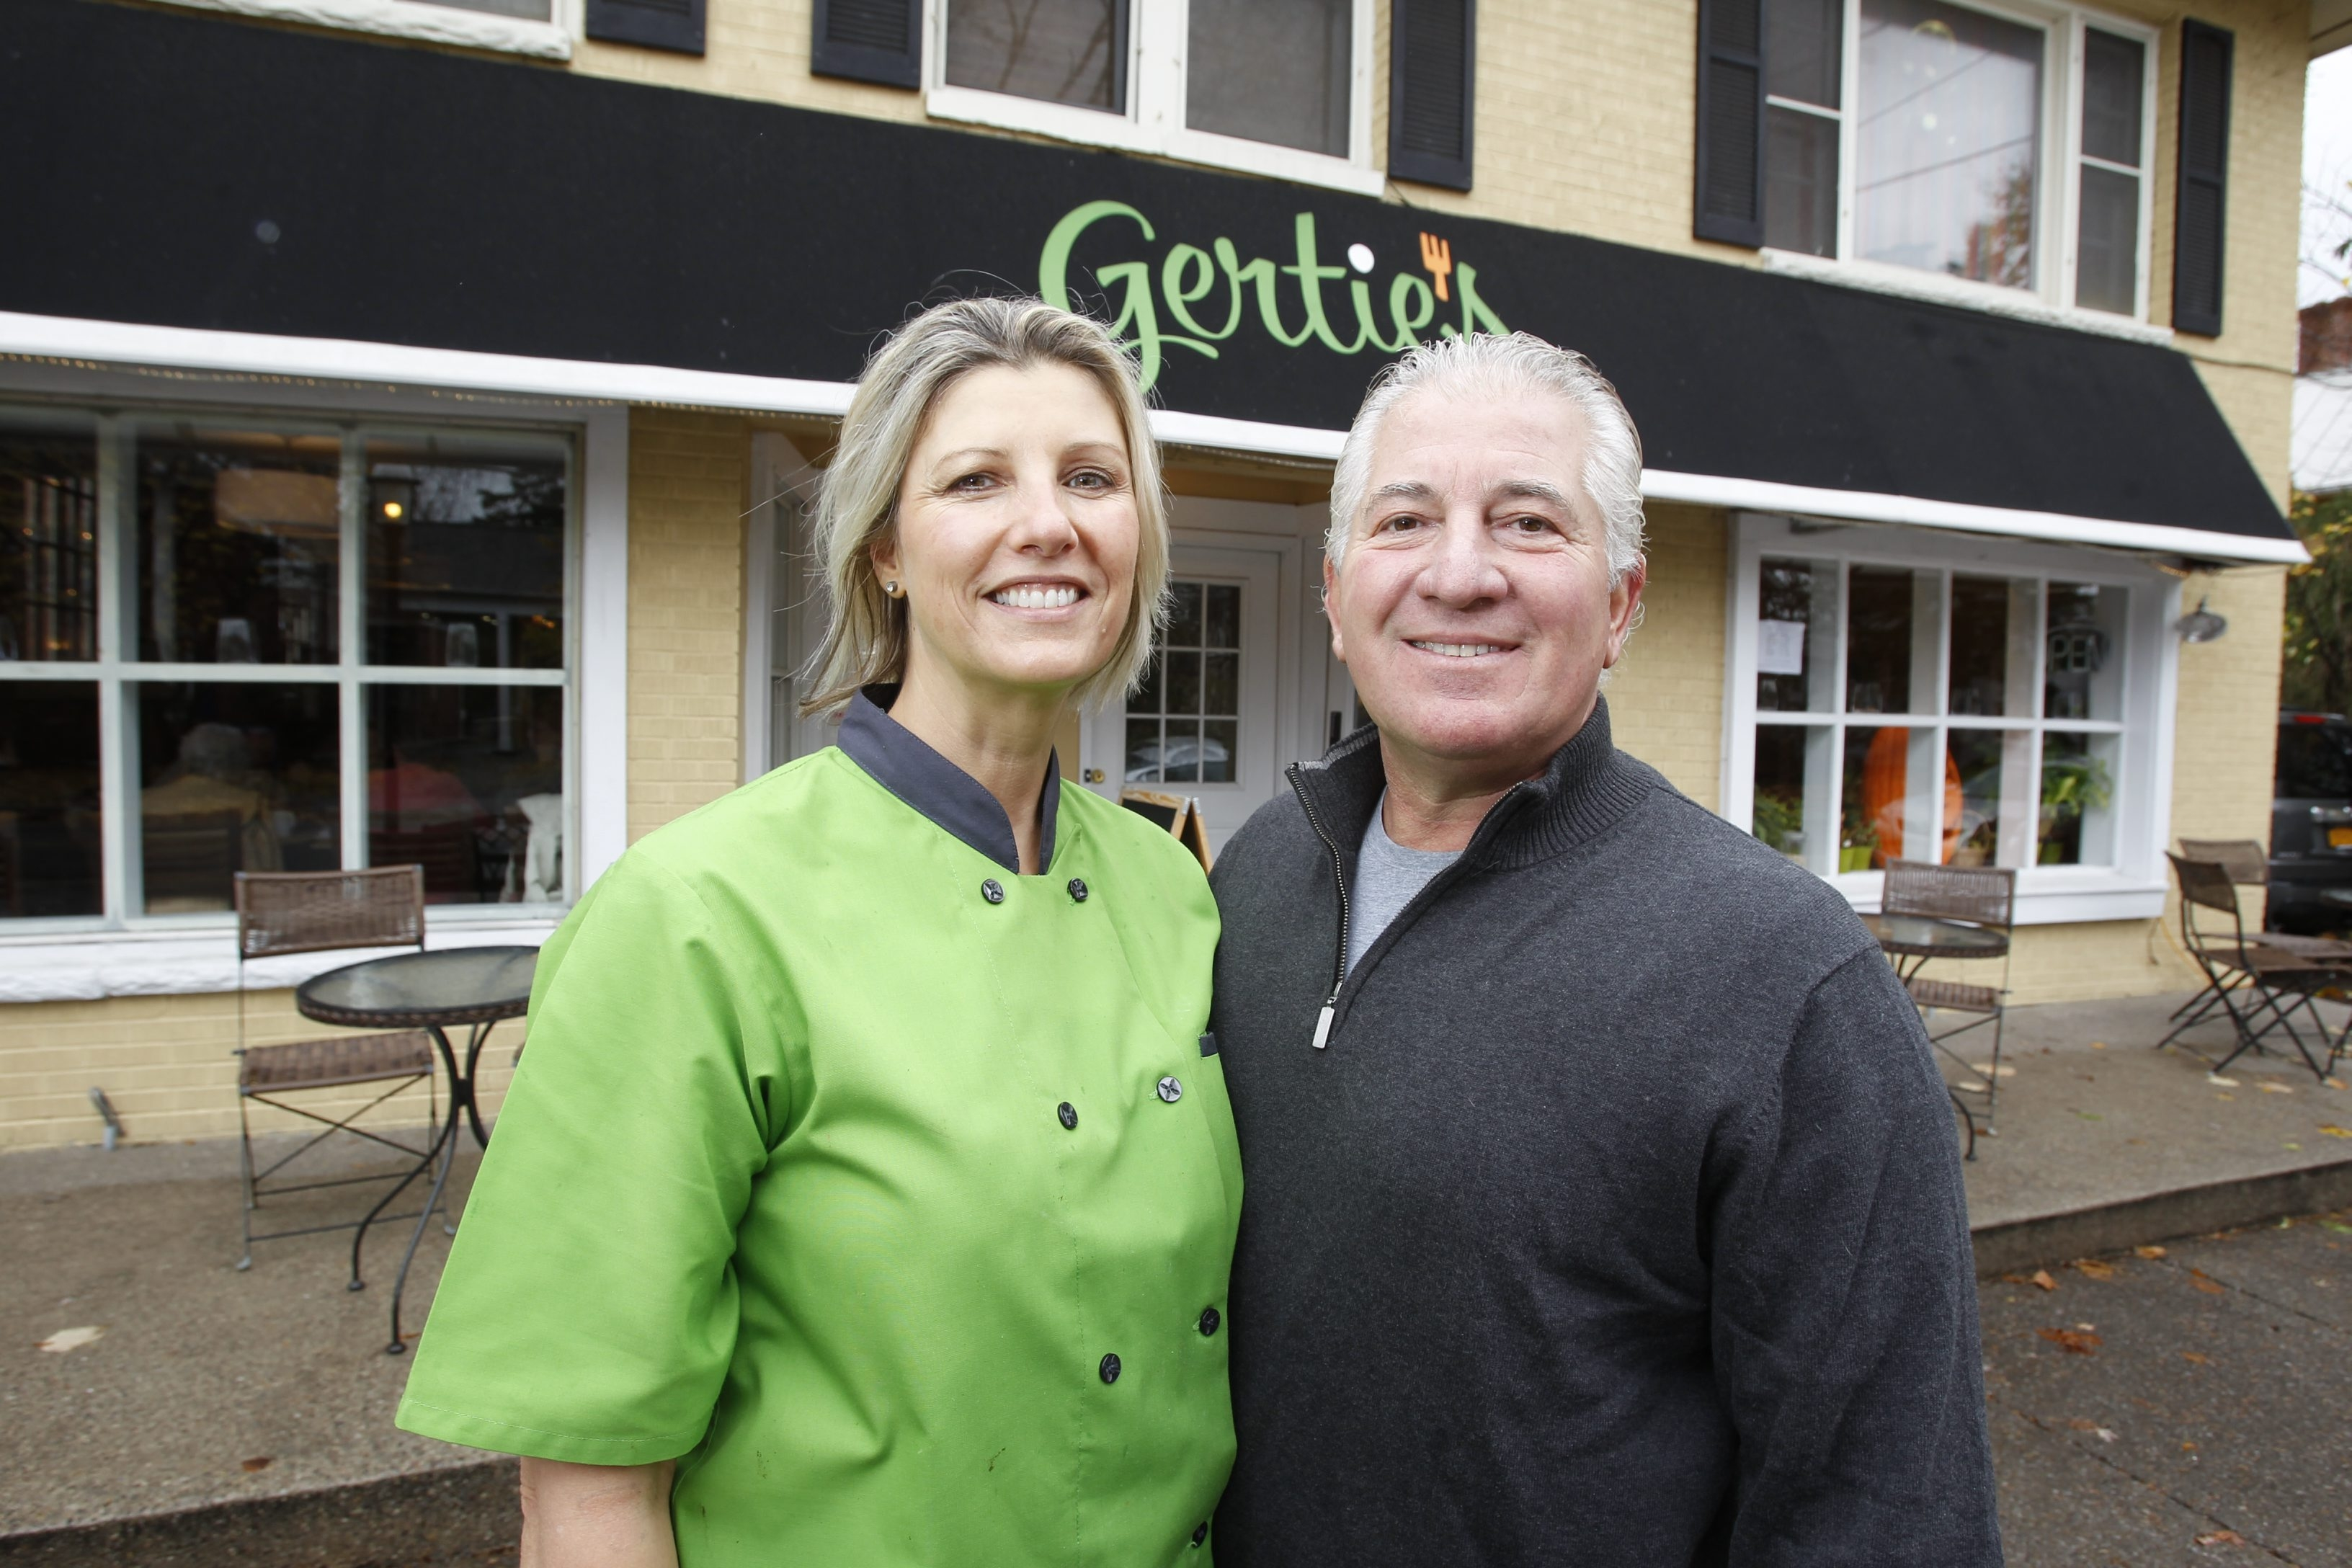 When Beth Gross met Gary Held in a Florida airport in 2007, little did she know that meeting would mean her leaving her job, moving to the Buffalo Niagara region from Chicago, and opening Gertie's restaurant.